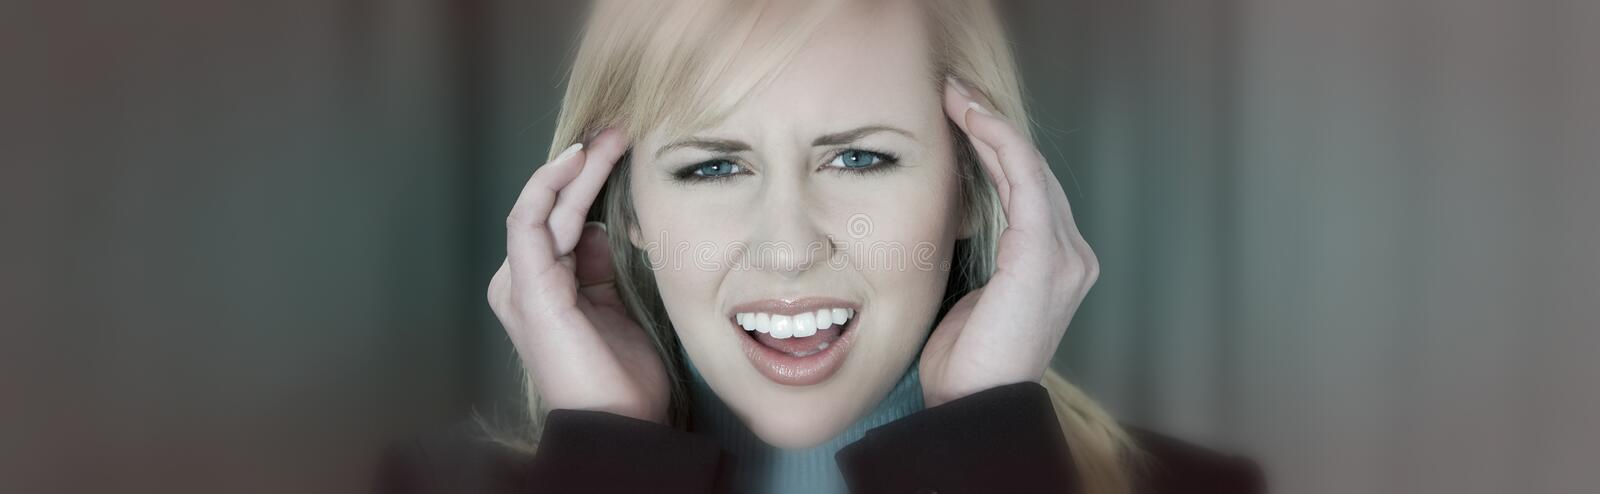 Female Woman With Migraine Stress Headache stock photos